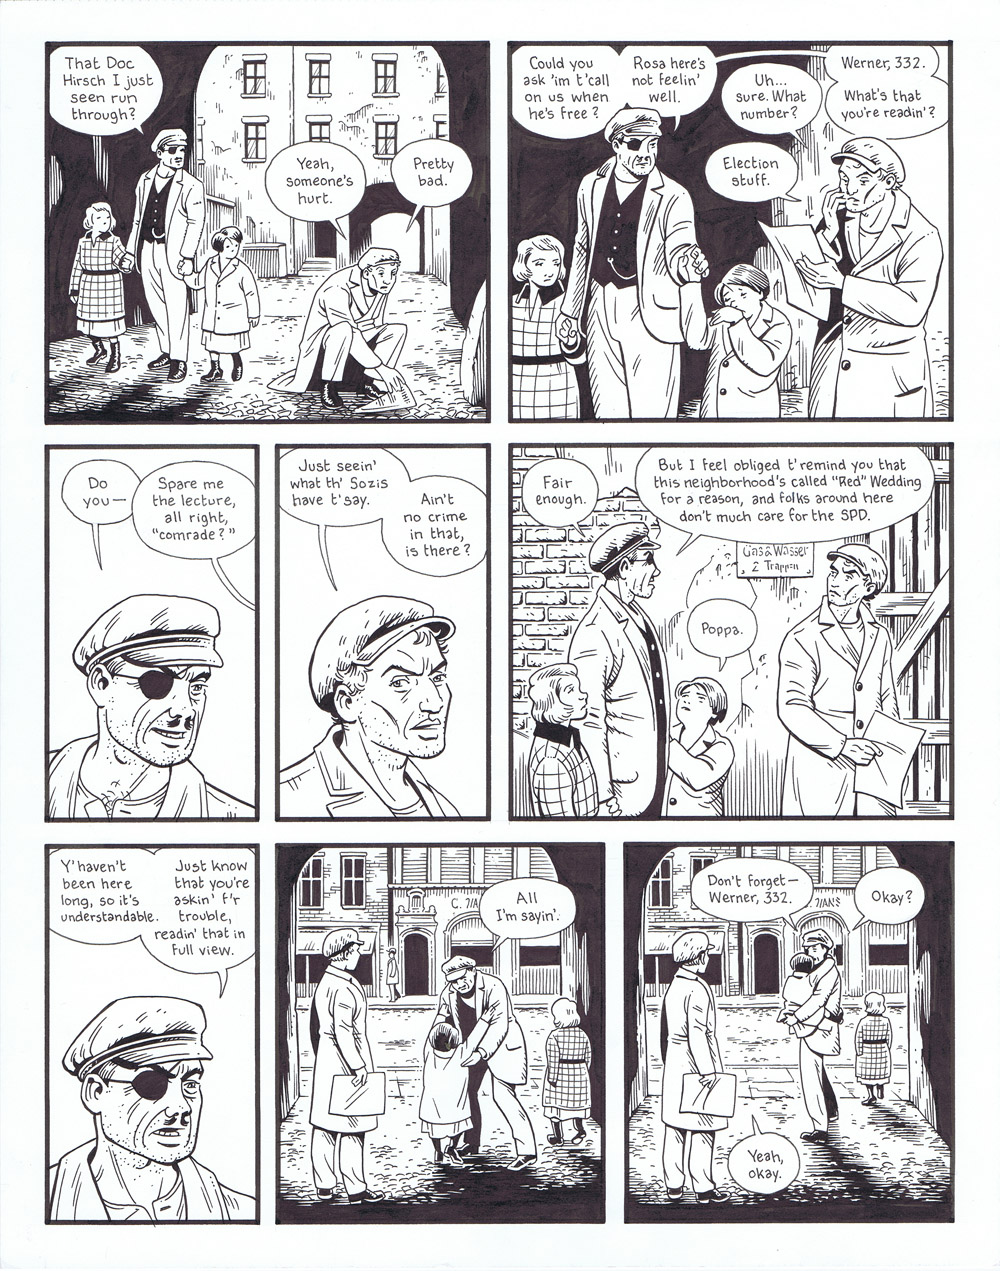 Berlin: Book 2 - page 194